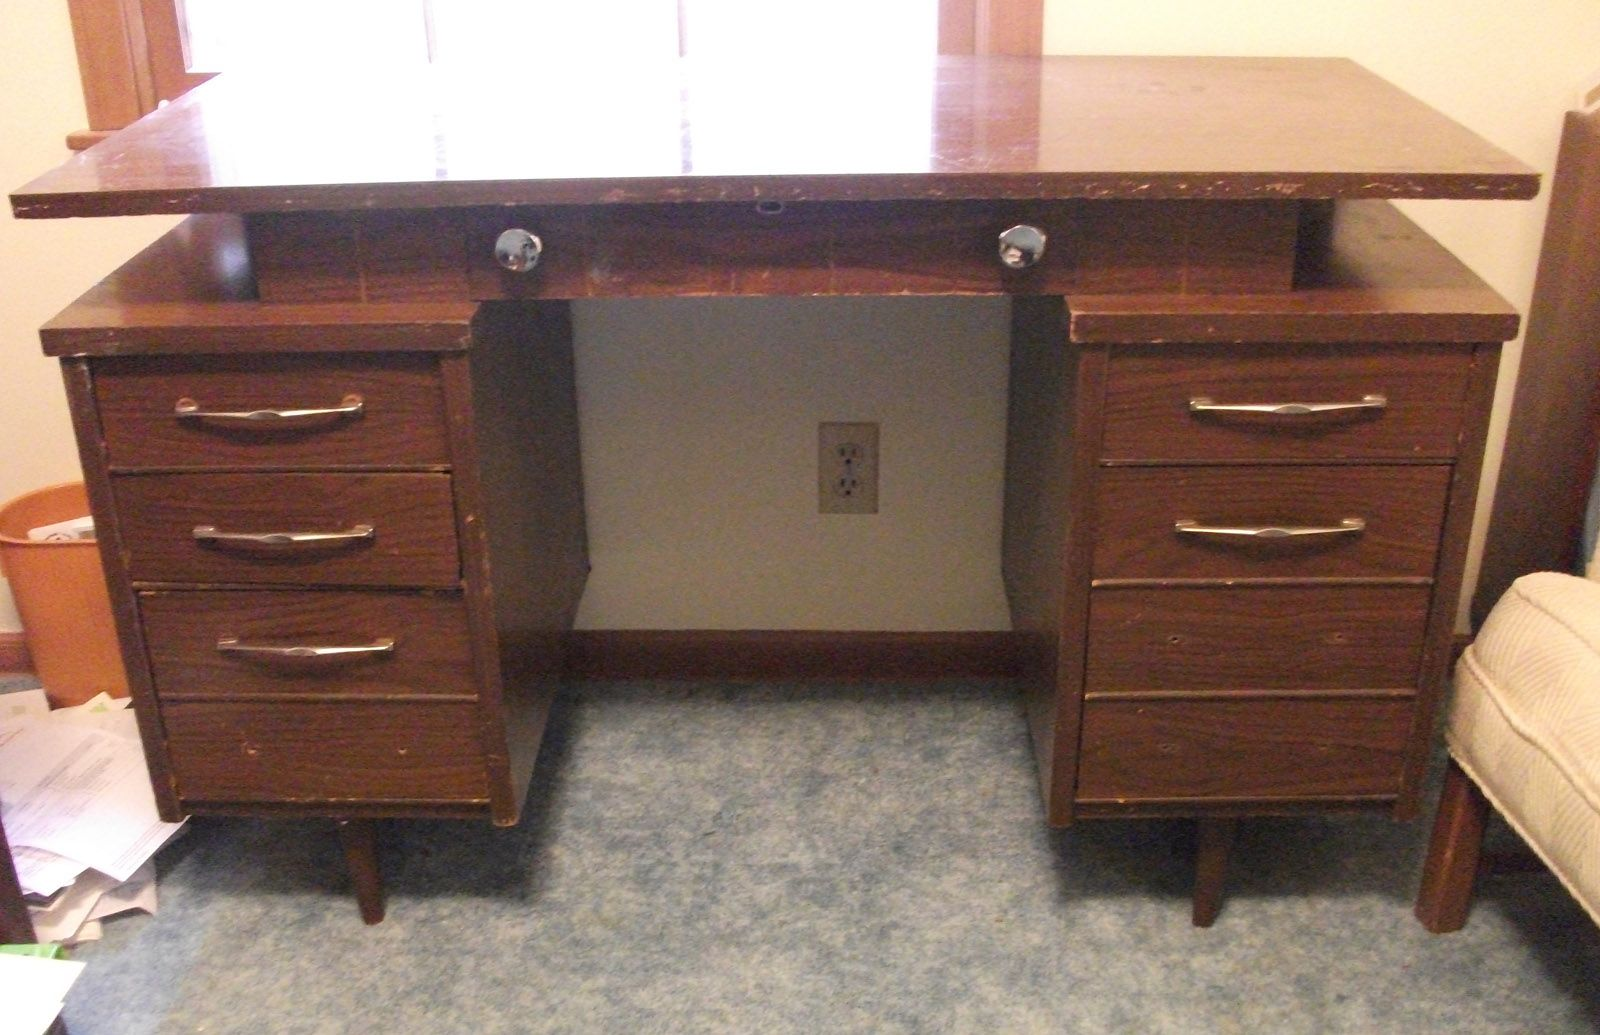 Swell The Desk For My Office Guest Room Free On Craigslist I Home Interior And Landscaping Oversignezvosmurscom